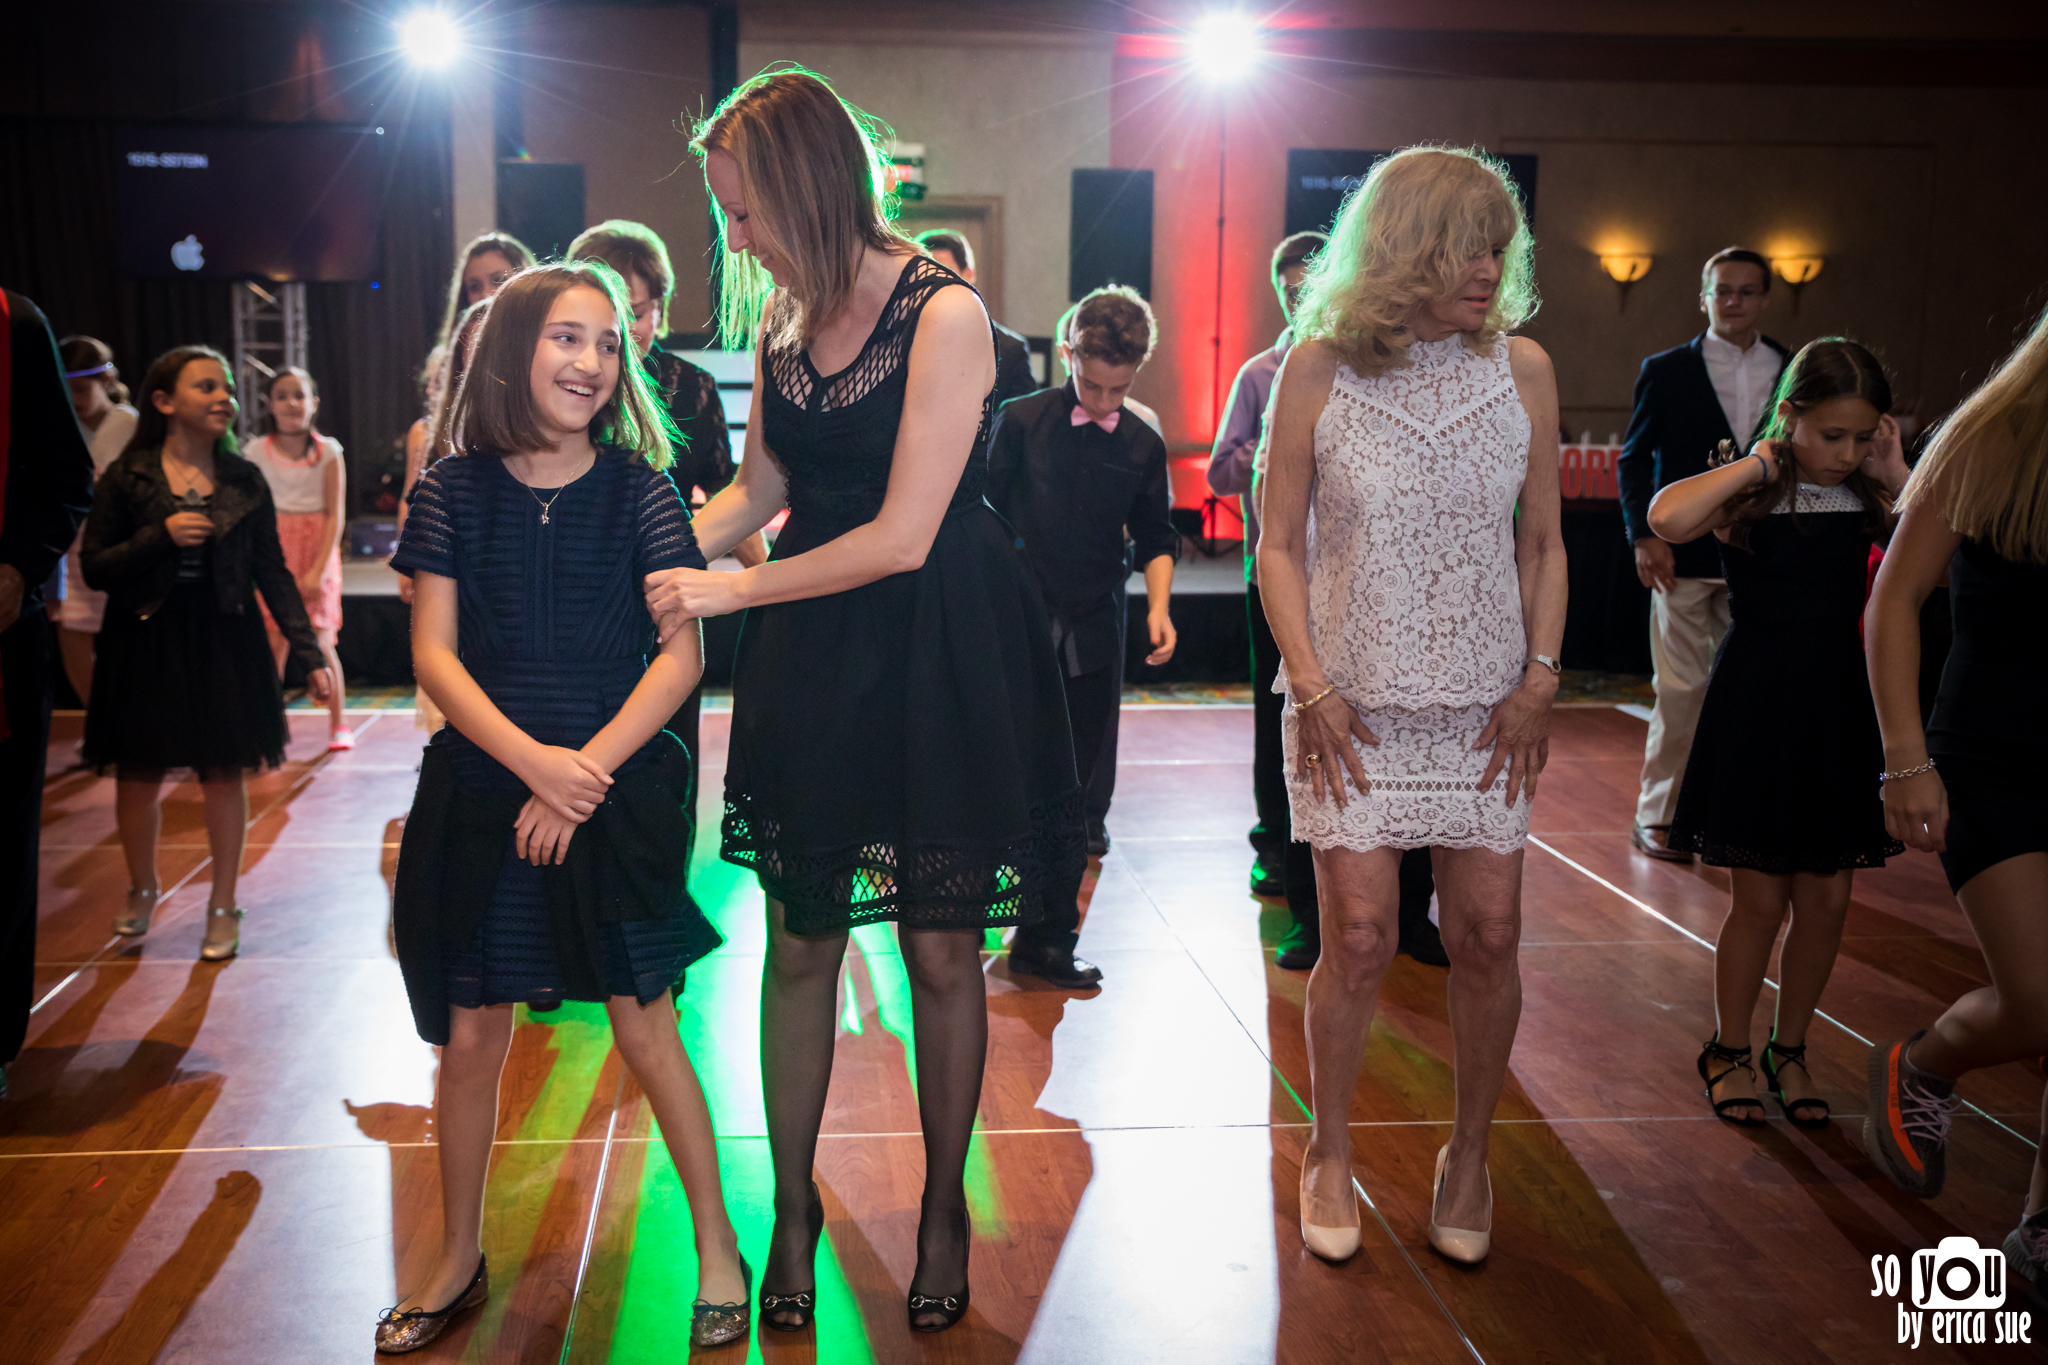 bar-mitzvah-photographer-parkland-fl-marriott-6691.jpg